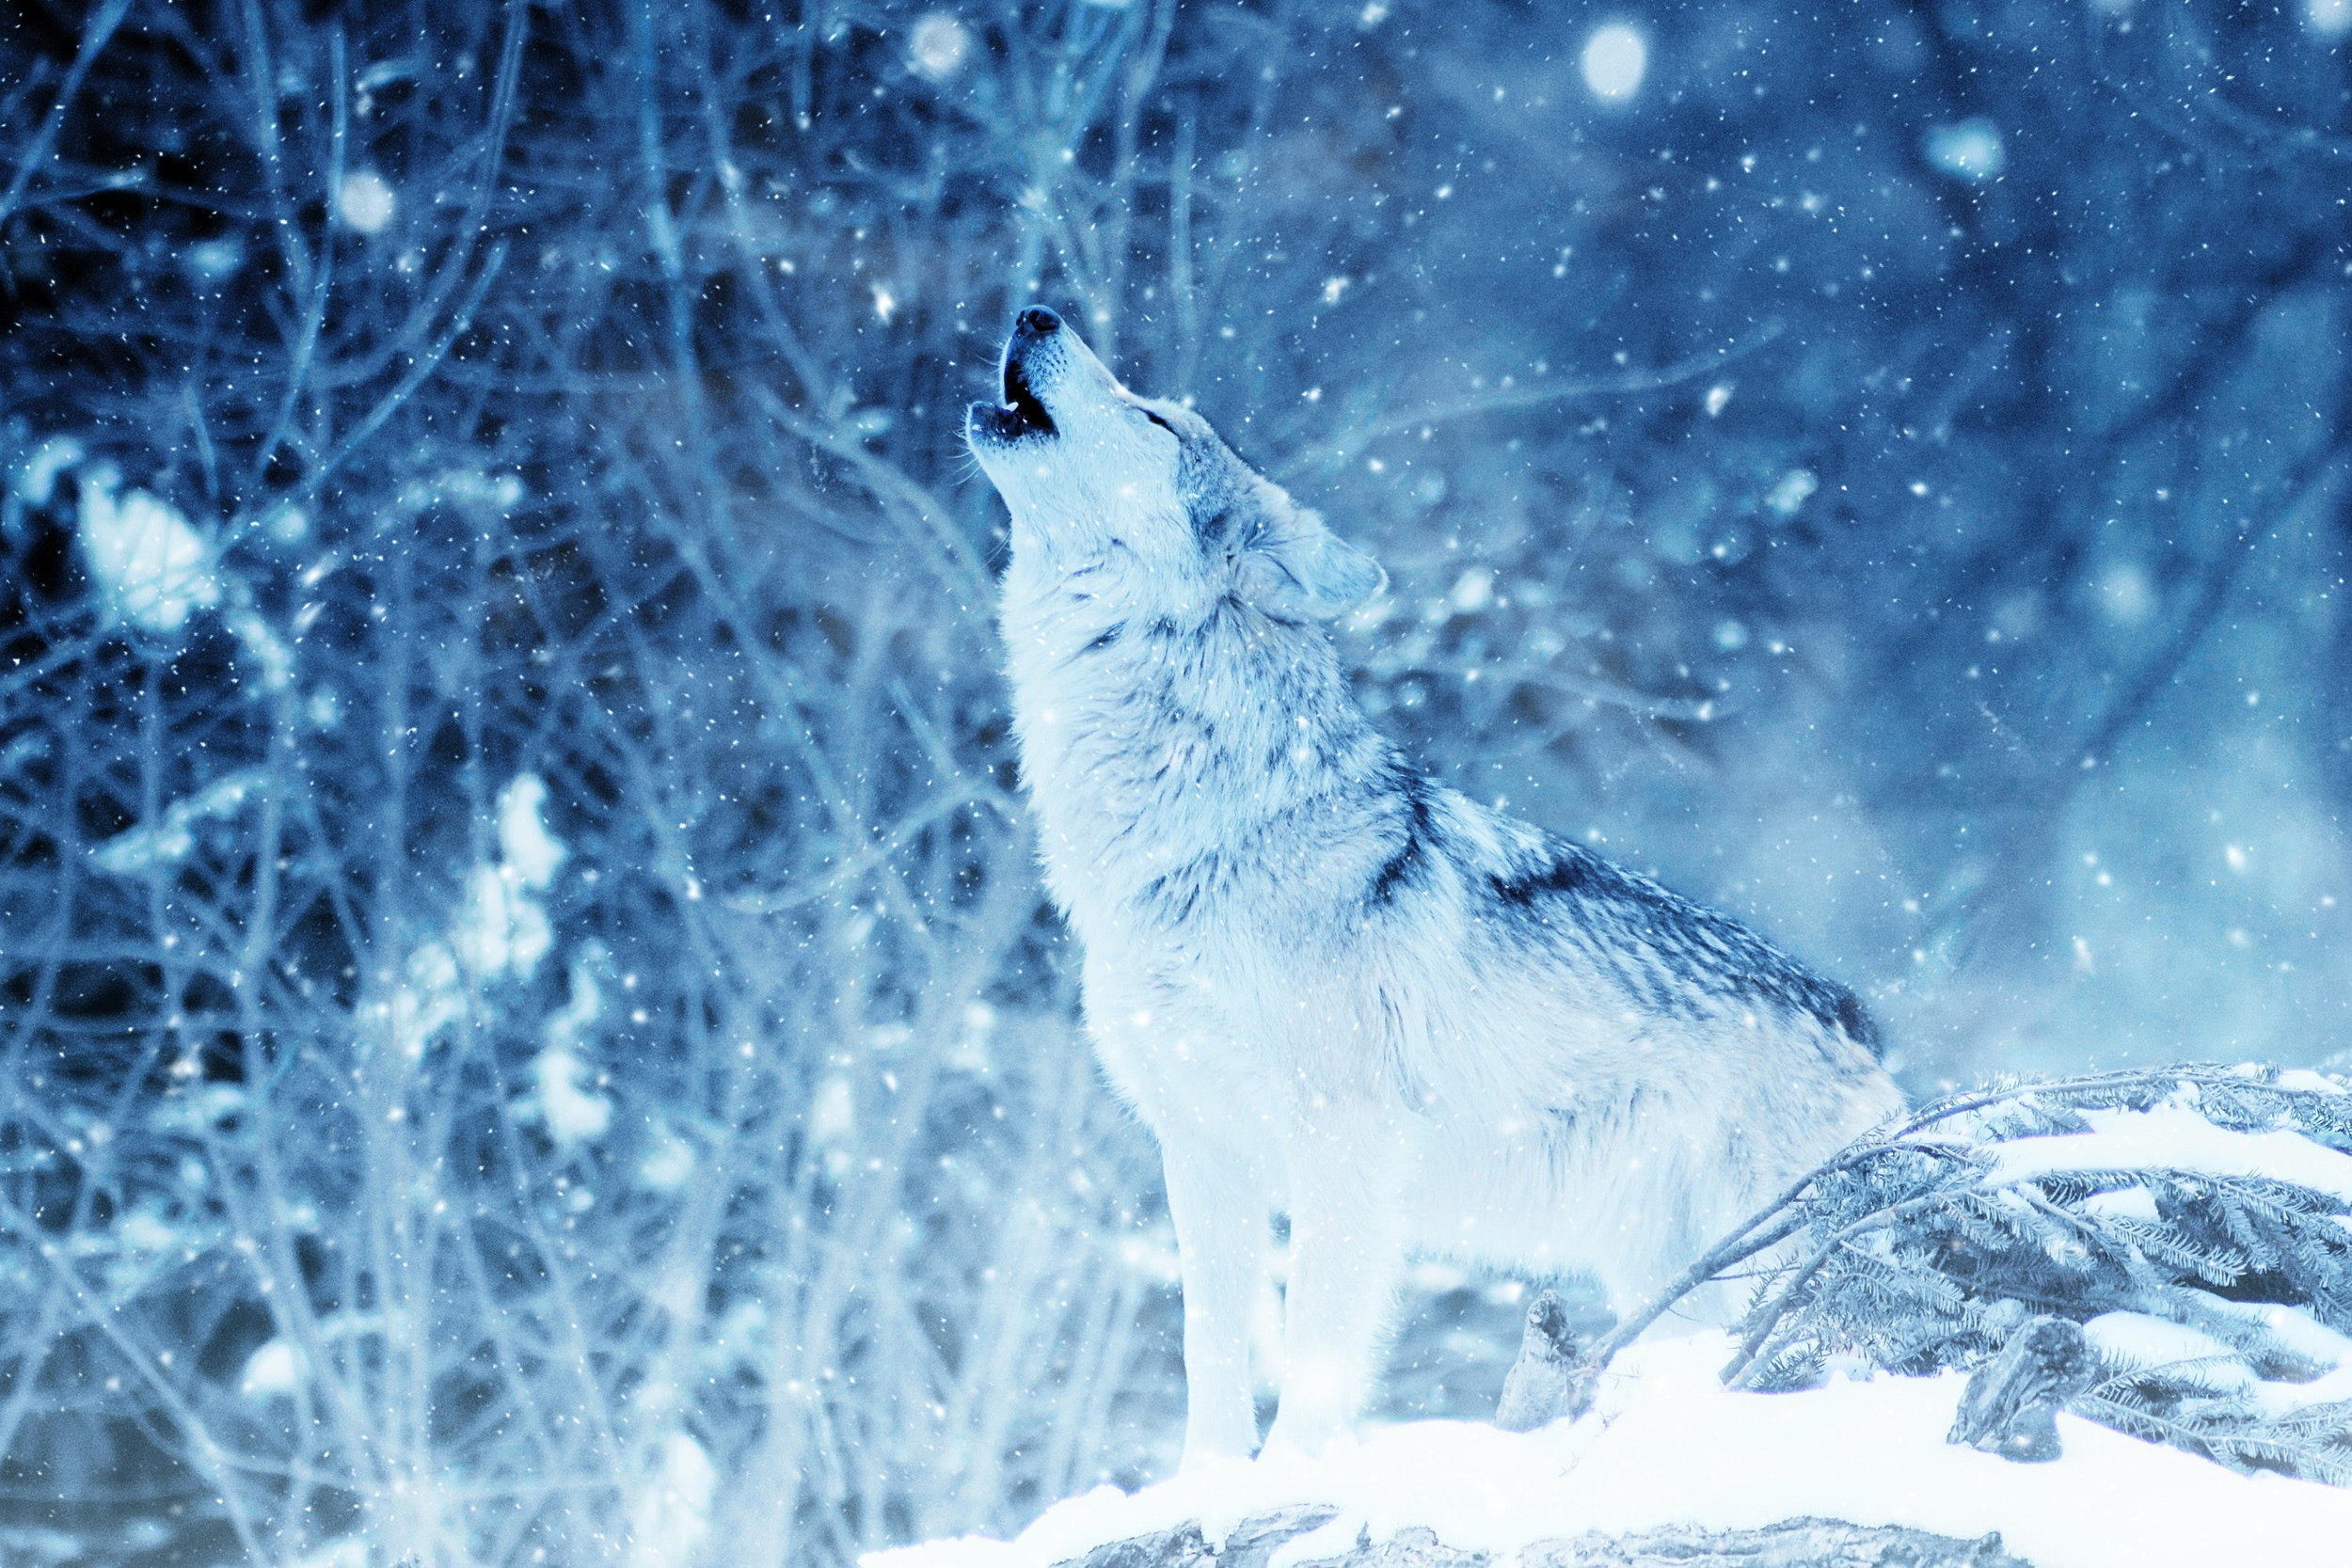 Lone Wild Wolf - Saturday, January 19, 2019, 7:30pmFirst Presbyterian Church8001 Mesa Drive, Austin, Texas 78731Sunday, January 20, 2019, 3:00pmPrivate residence; Seating is limited!